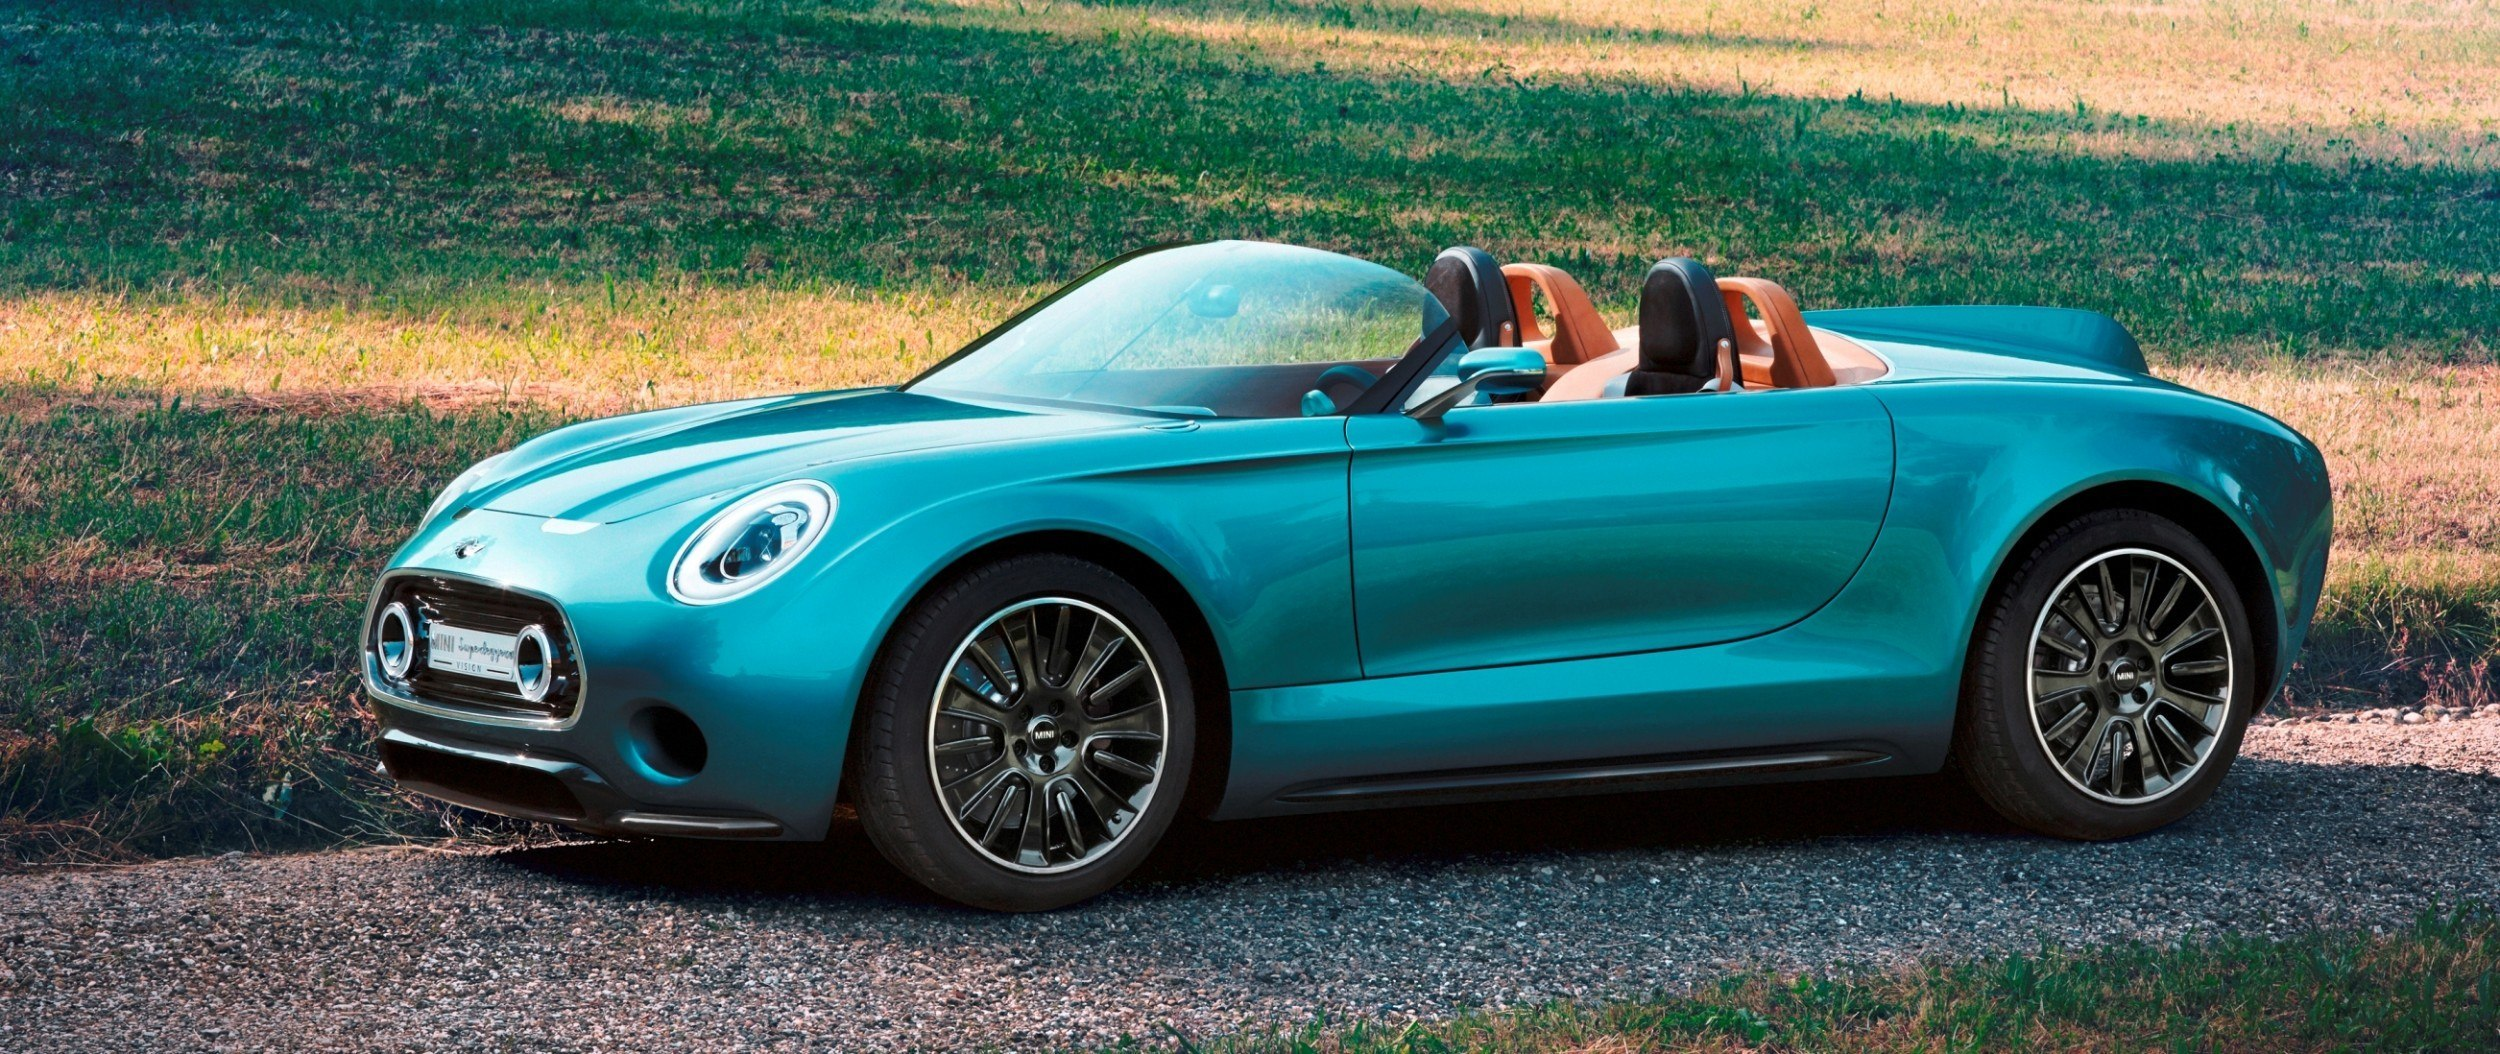 2014 Mini Superleggera Concept Is Dreamy Roofless Speedster